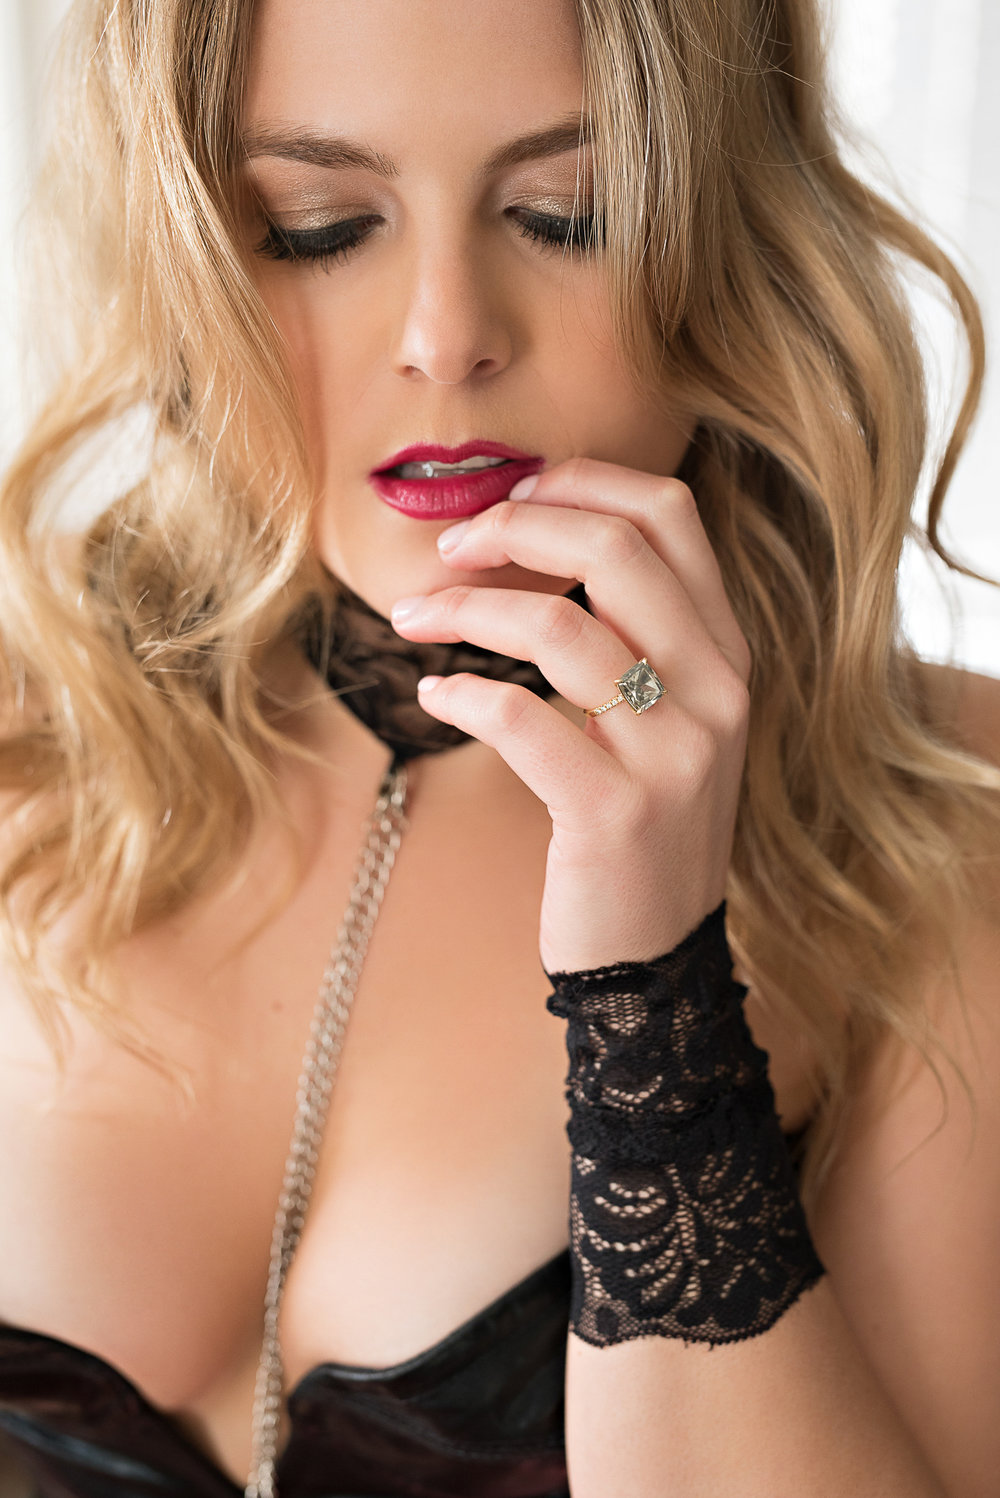 Blonde woman with sensual expression wearing black lingerie Denver boudoir photoshoot